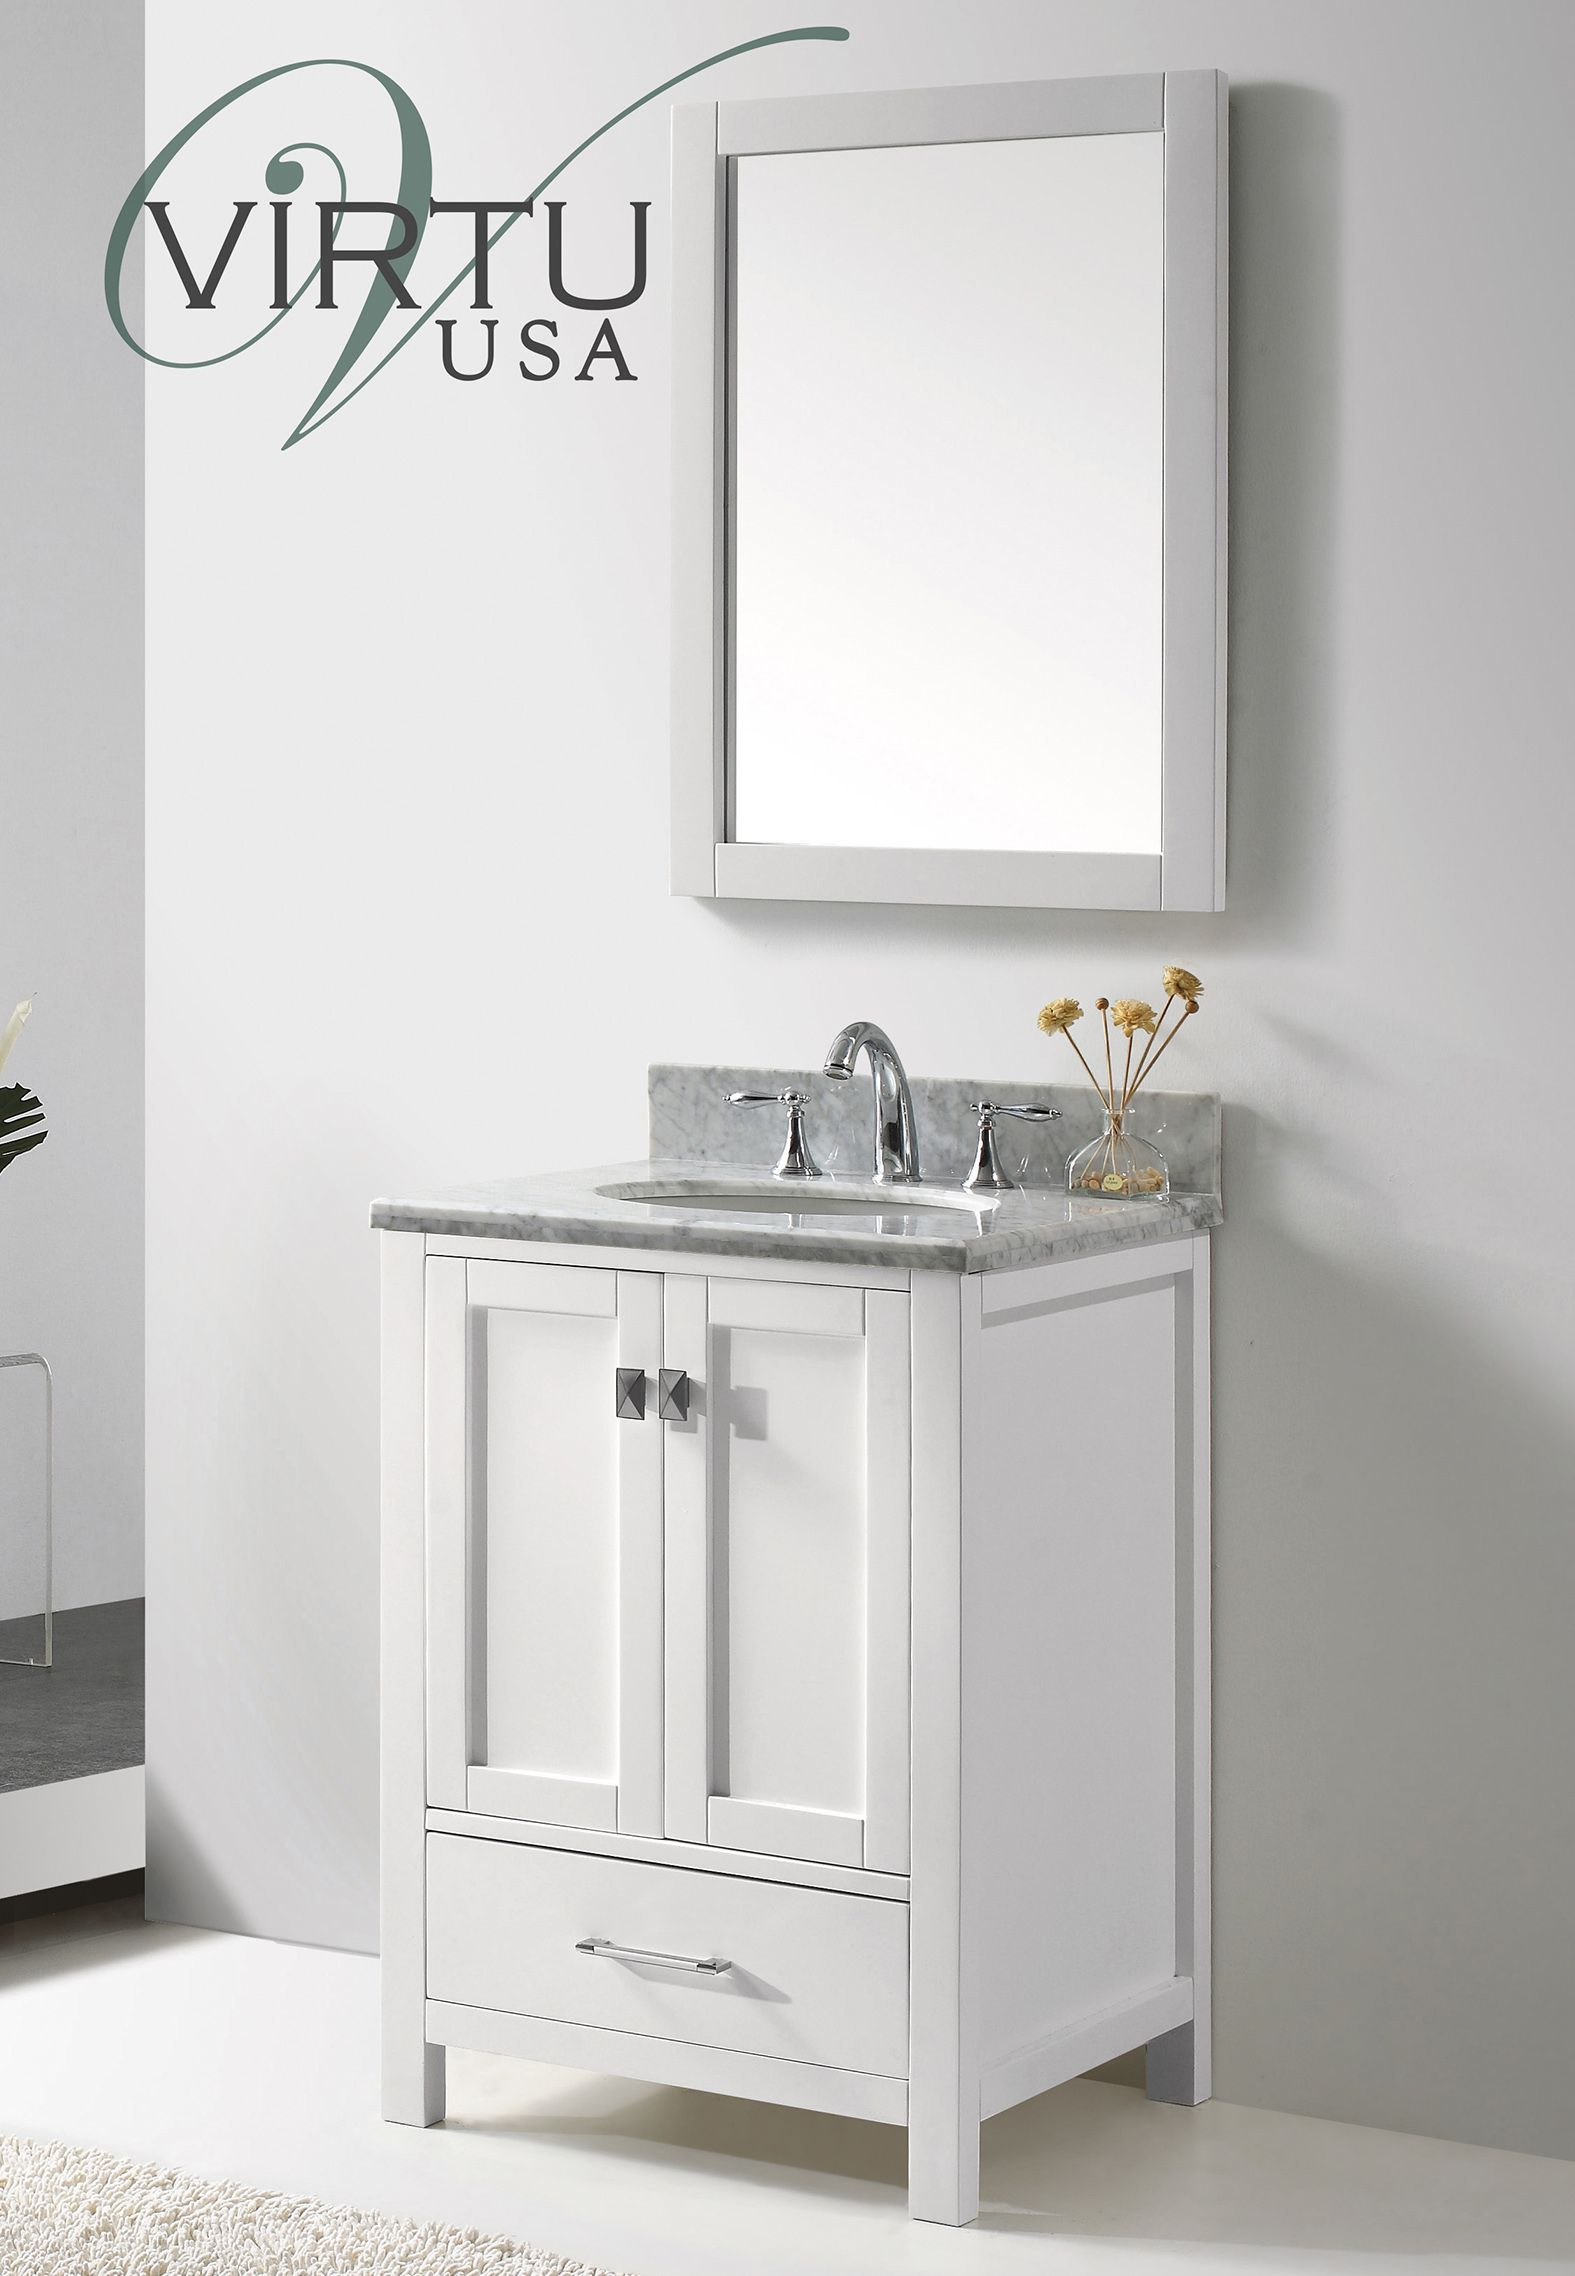 Abodo 24 inch Transitional Bathroom Vanity White Finish Set, White finish,  Zero-emissions solid oak wood, Water resistant low V.O.C